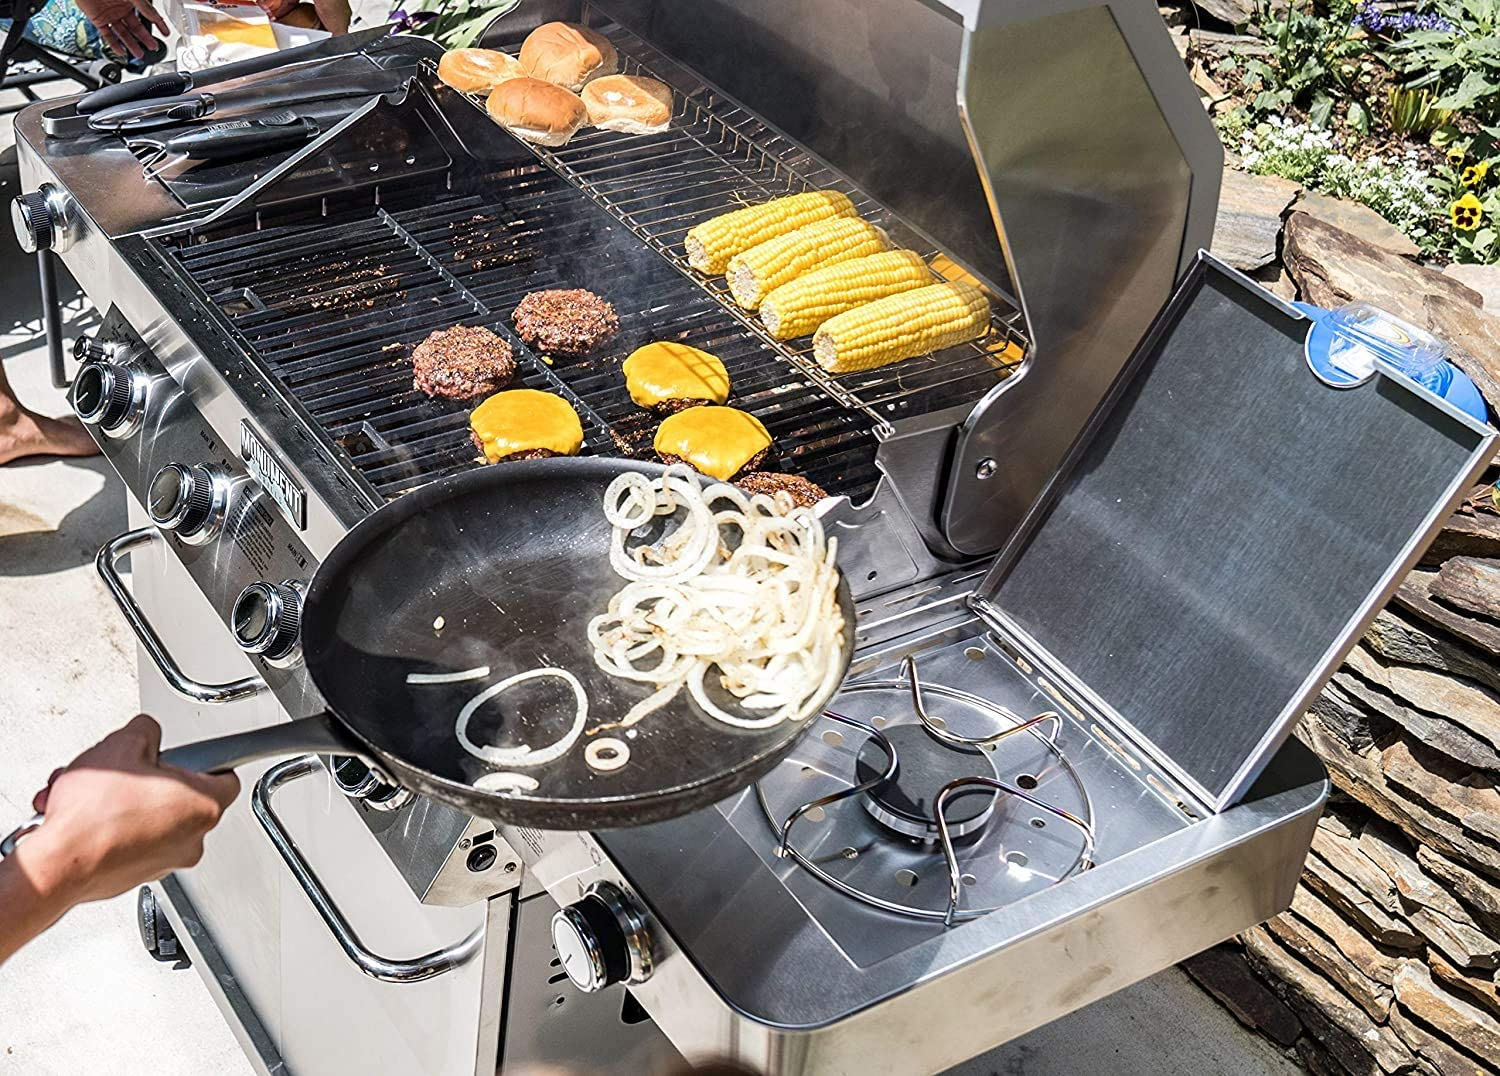 Stainless Monument Grills 4-Burner Propane Gas Grill Side /& Side Sear Burners-24367 LED Controls